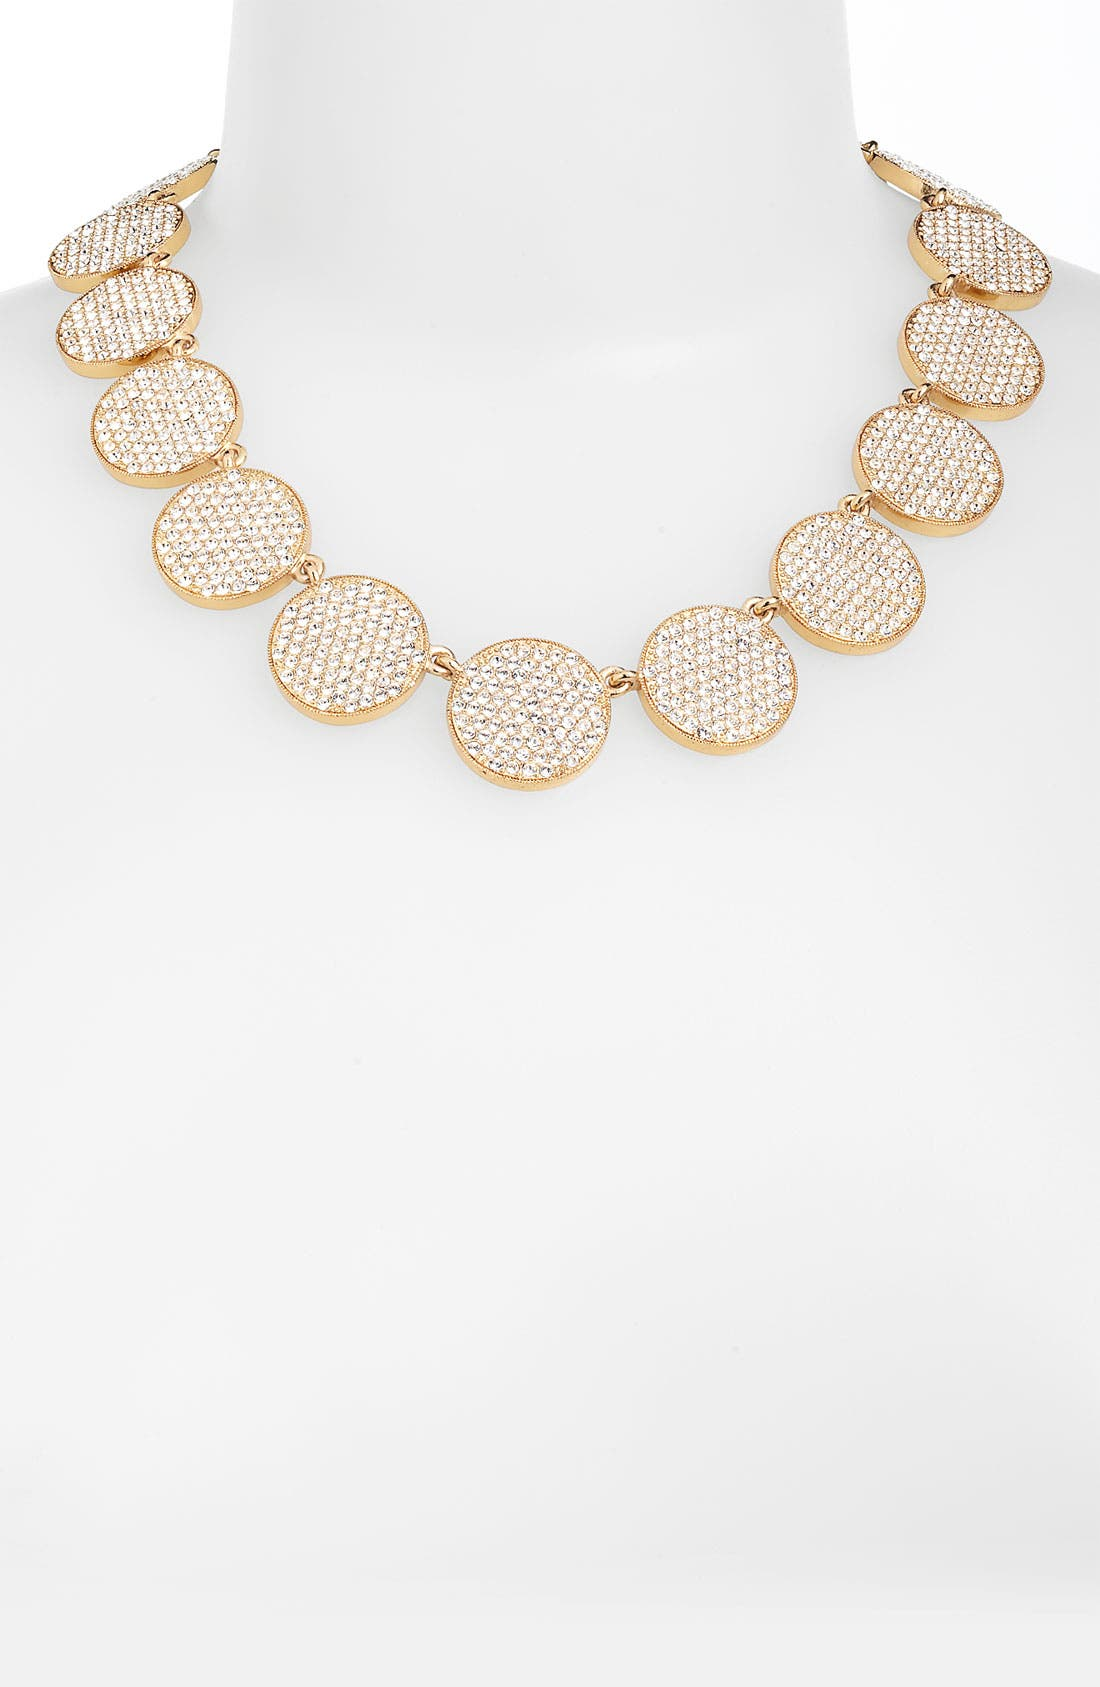 Alternate Image 1 Selected - kate spade new york 'bright spot' collar necklace